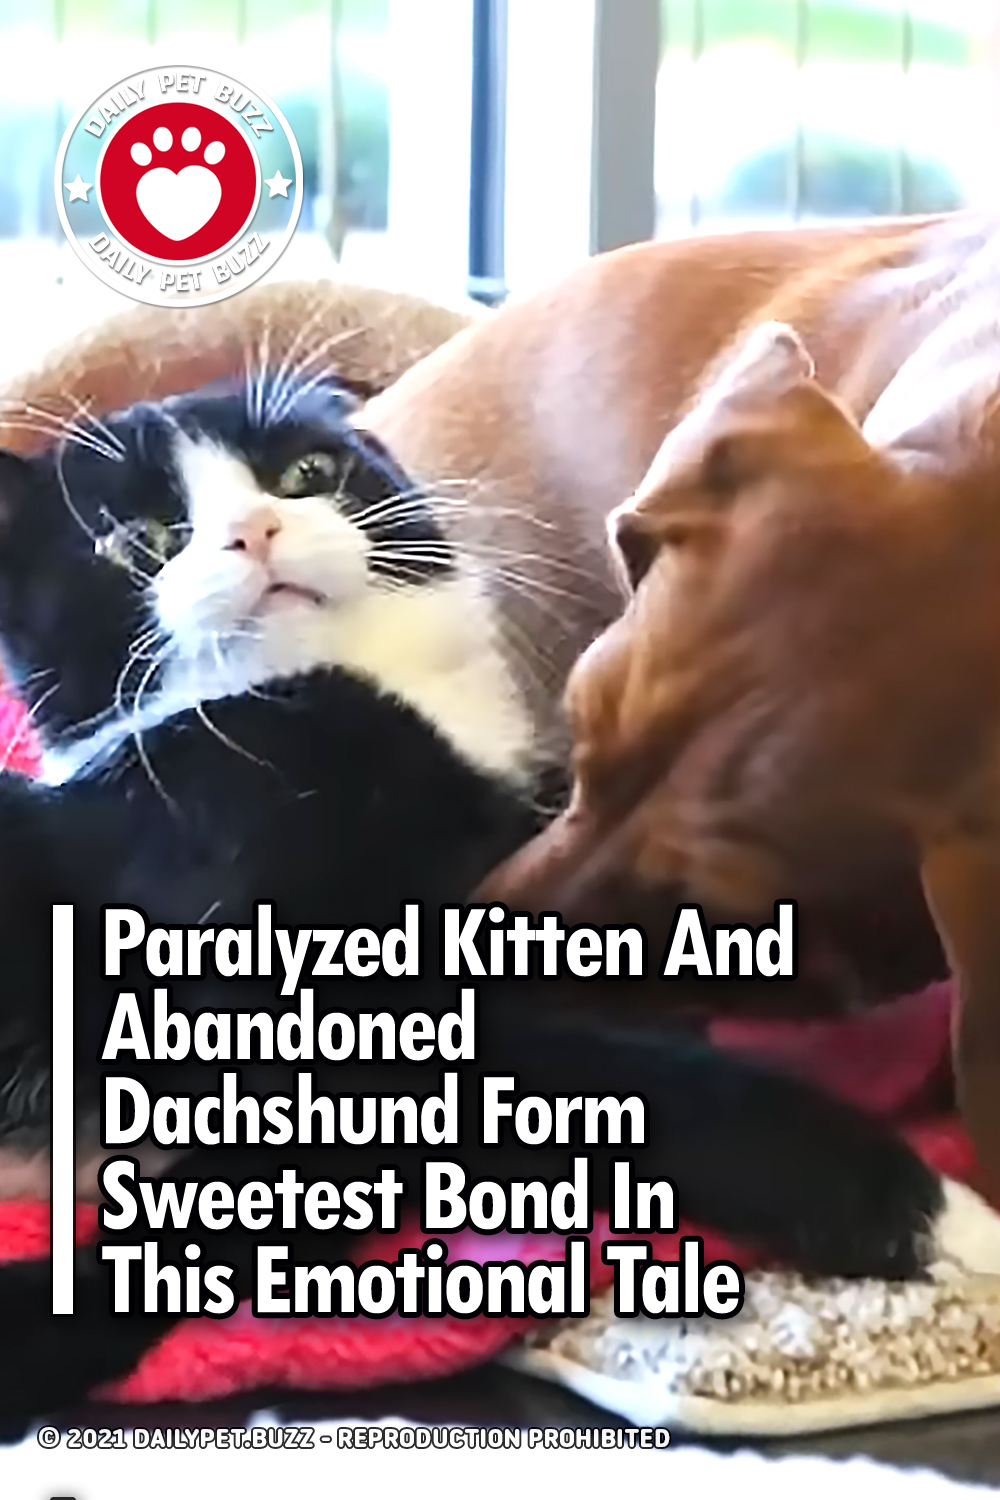 Paralyzed Kitten And Abandoned Dachshund Form Sweetest Bond In This Emotional Tale